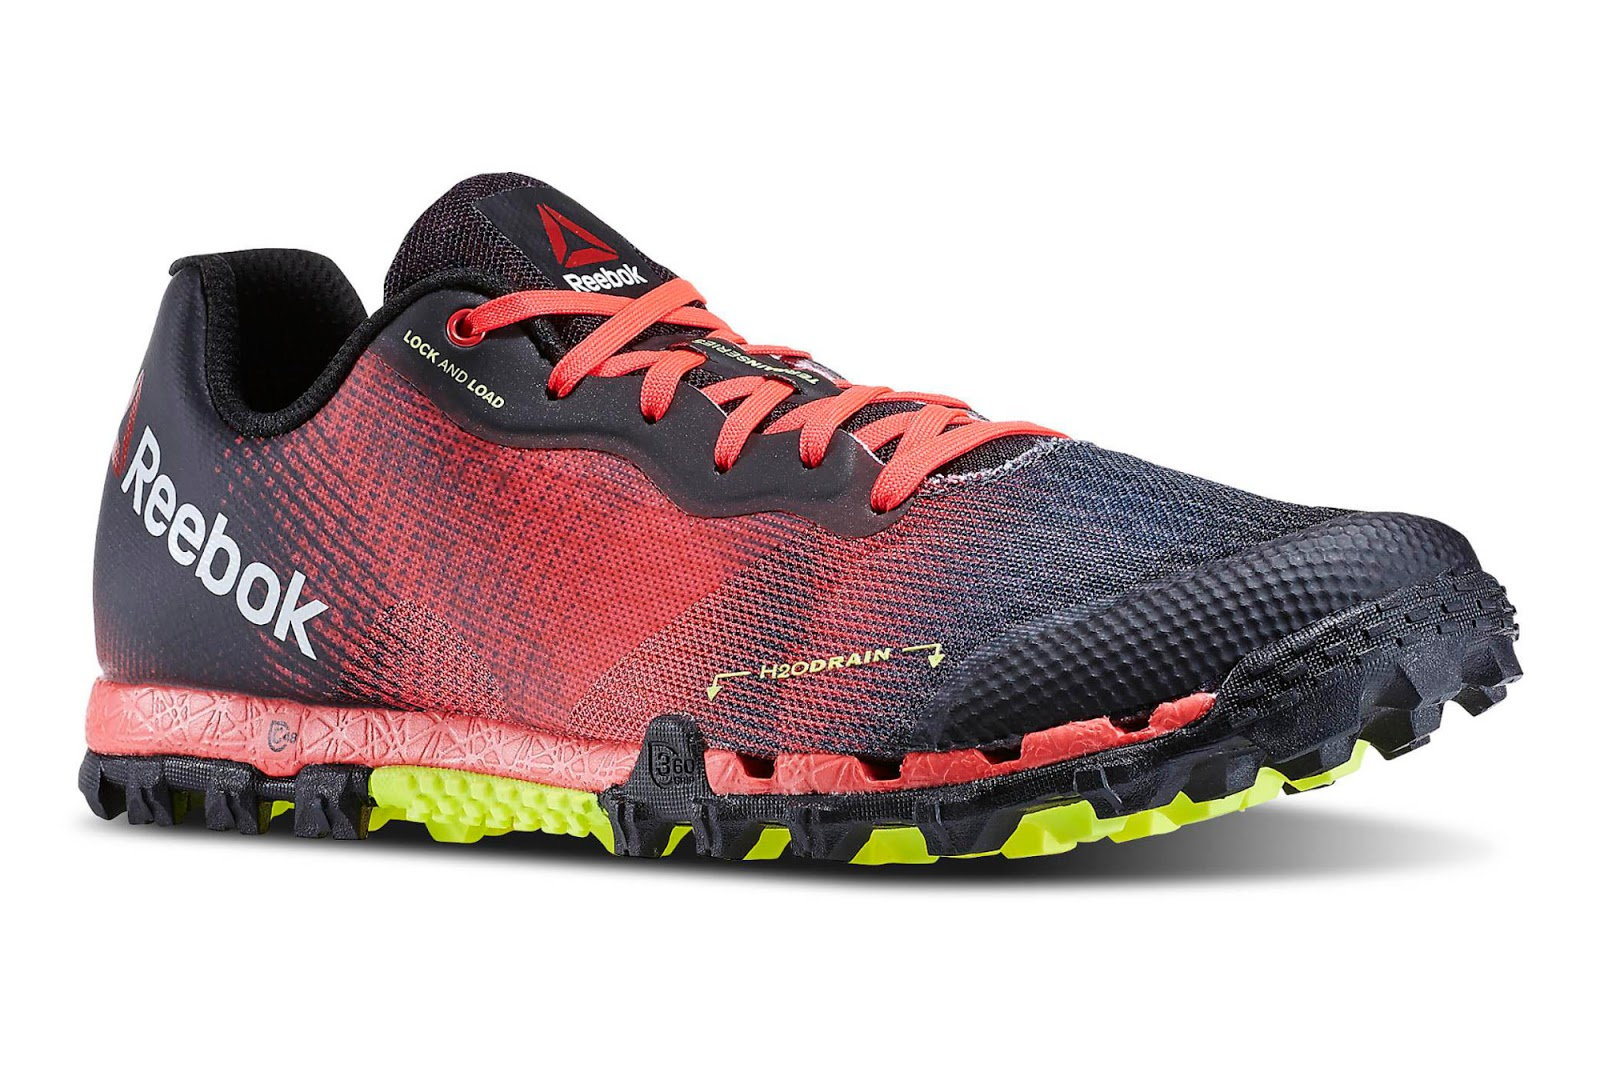 Best Crossfit Shoes For Squatting